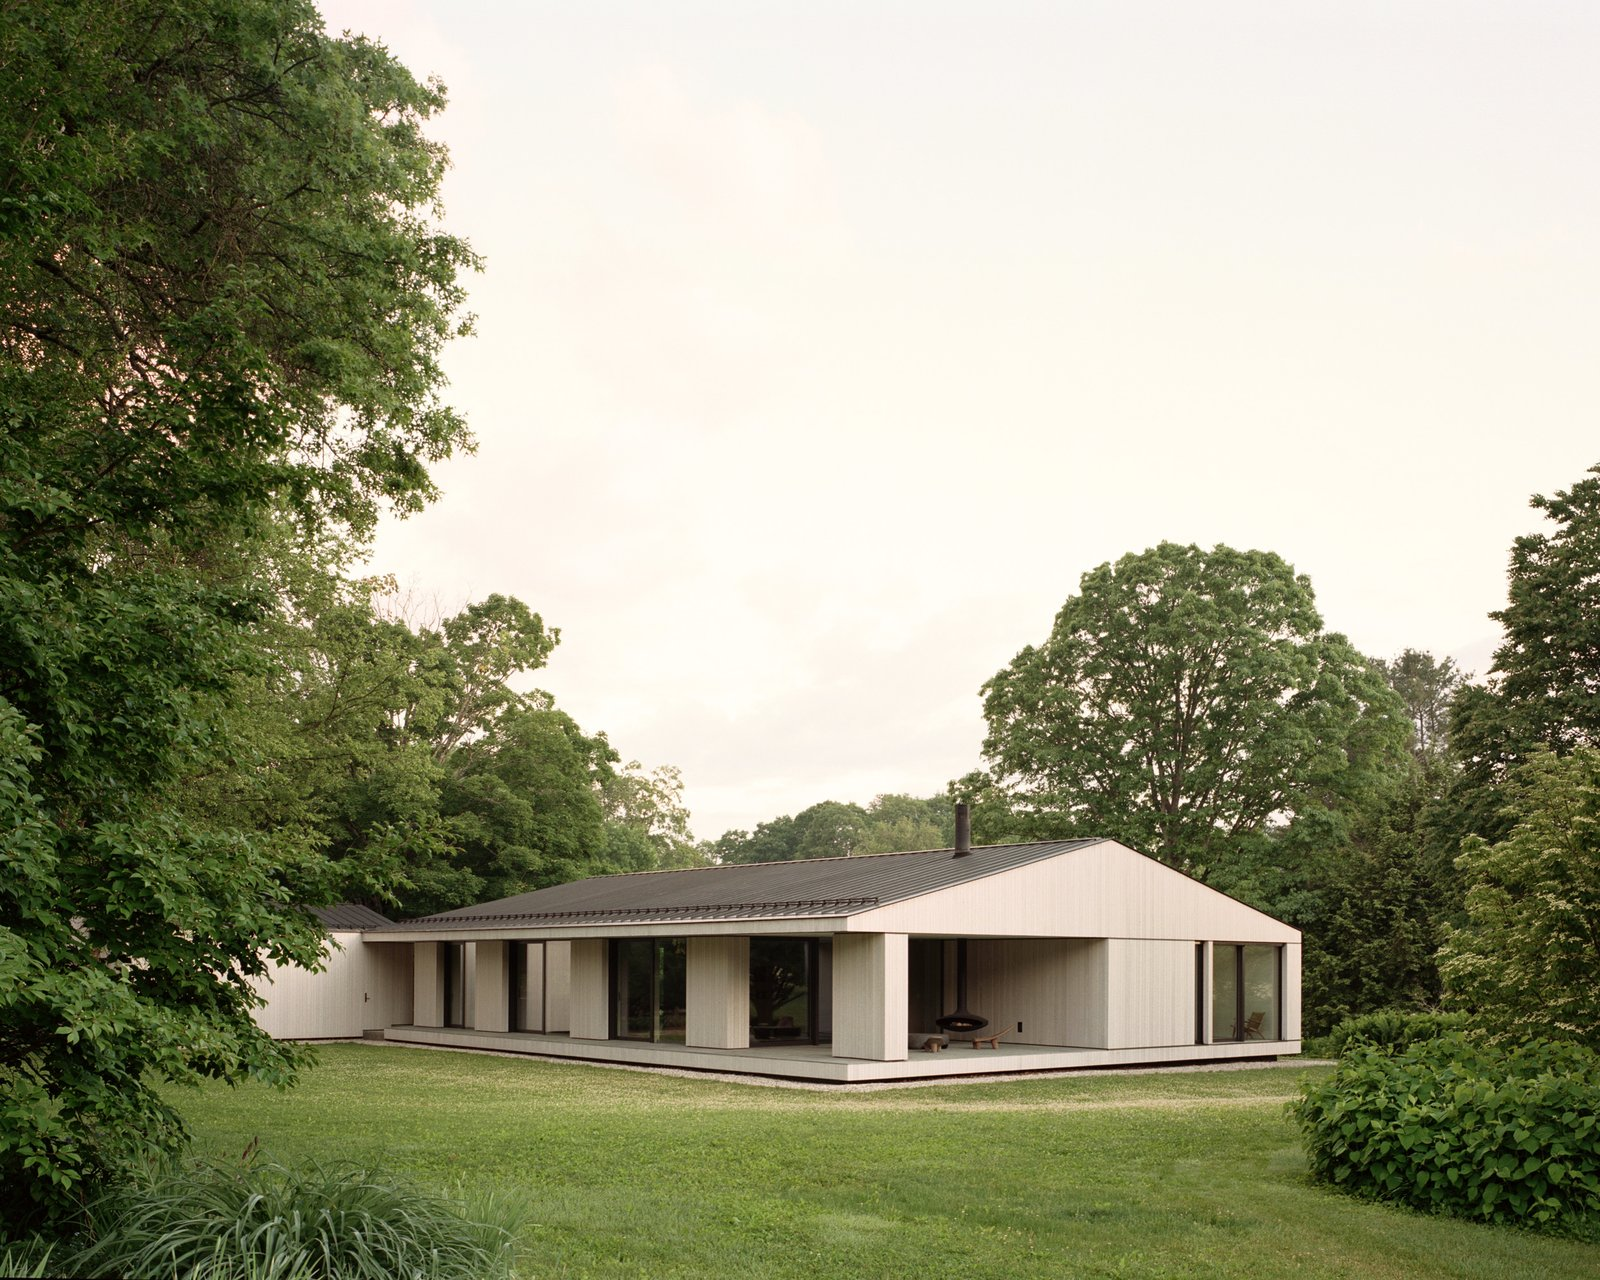 Sheffield residence by Vincent Appel / Of Possible exterior and landscape